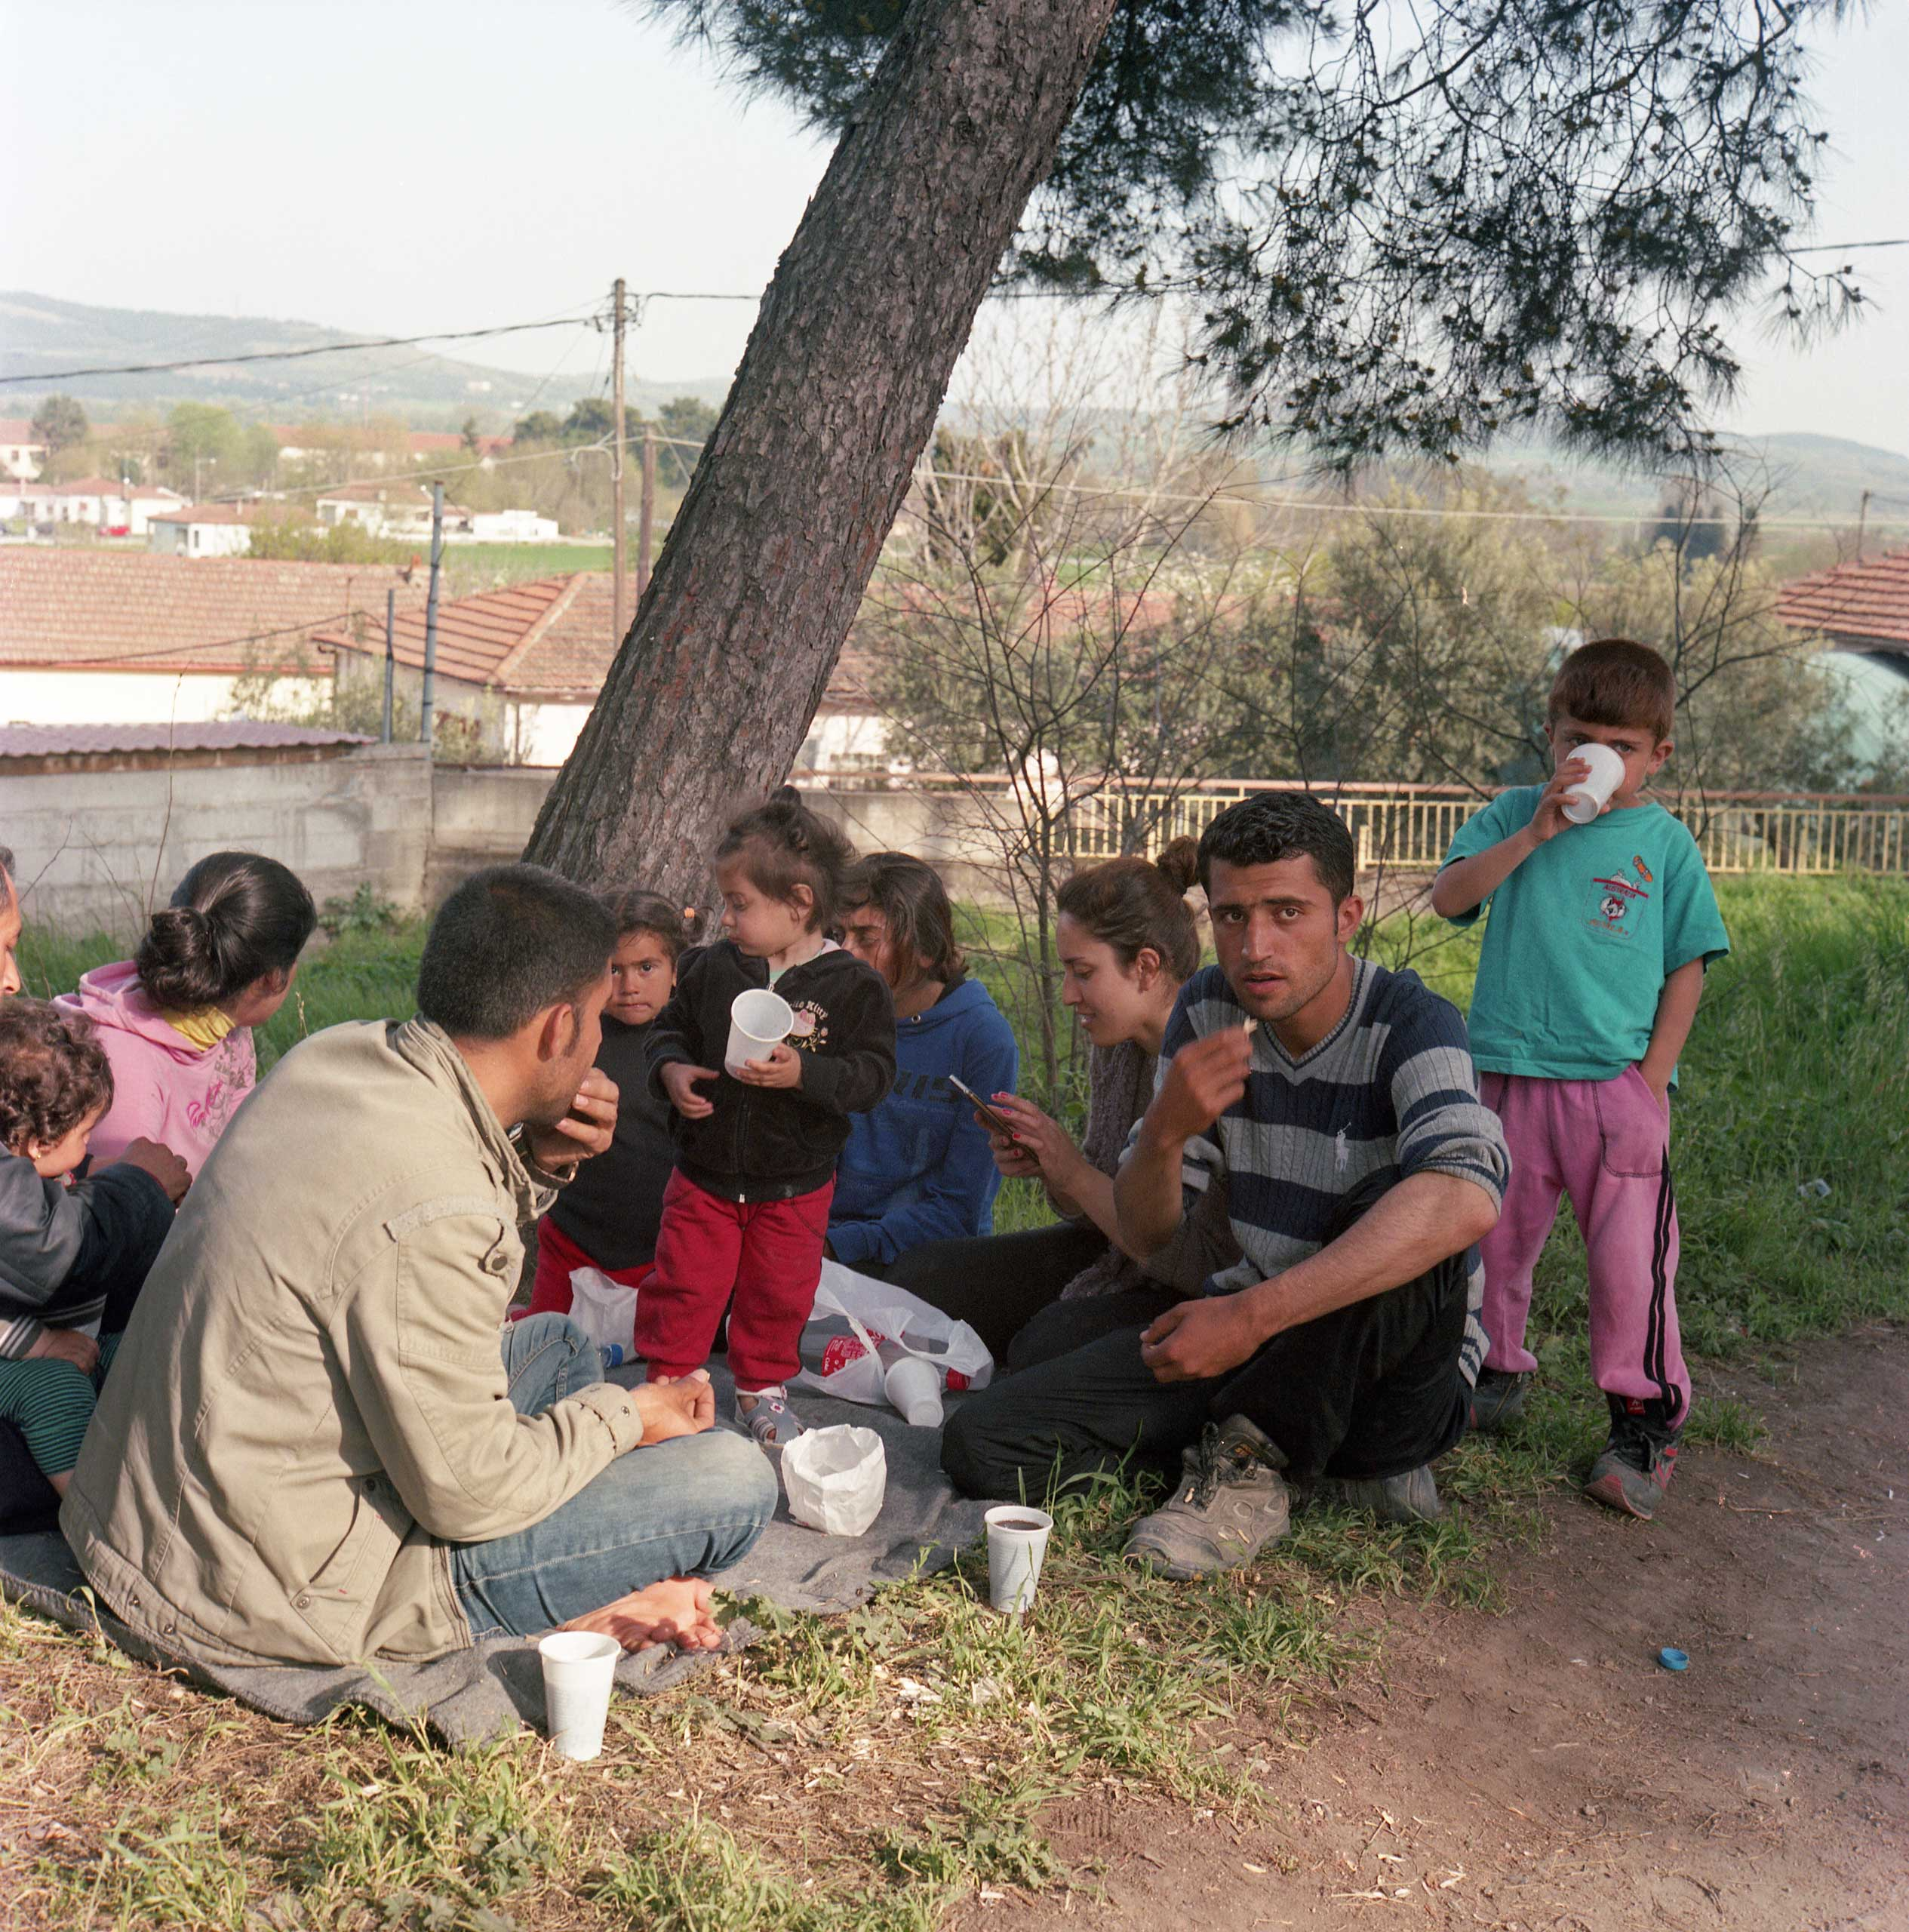 A Syrian family eats in a park in Idomeni, Greece. April 2016.